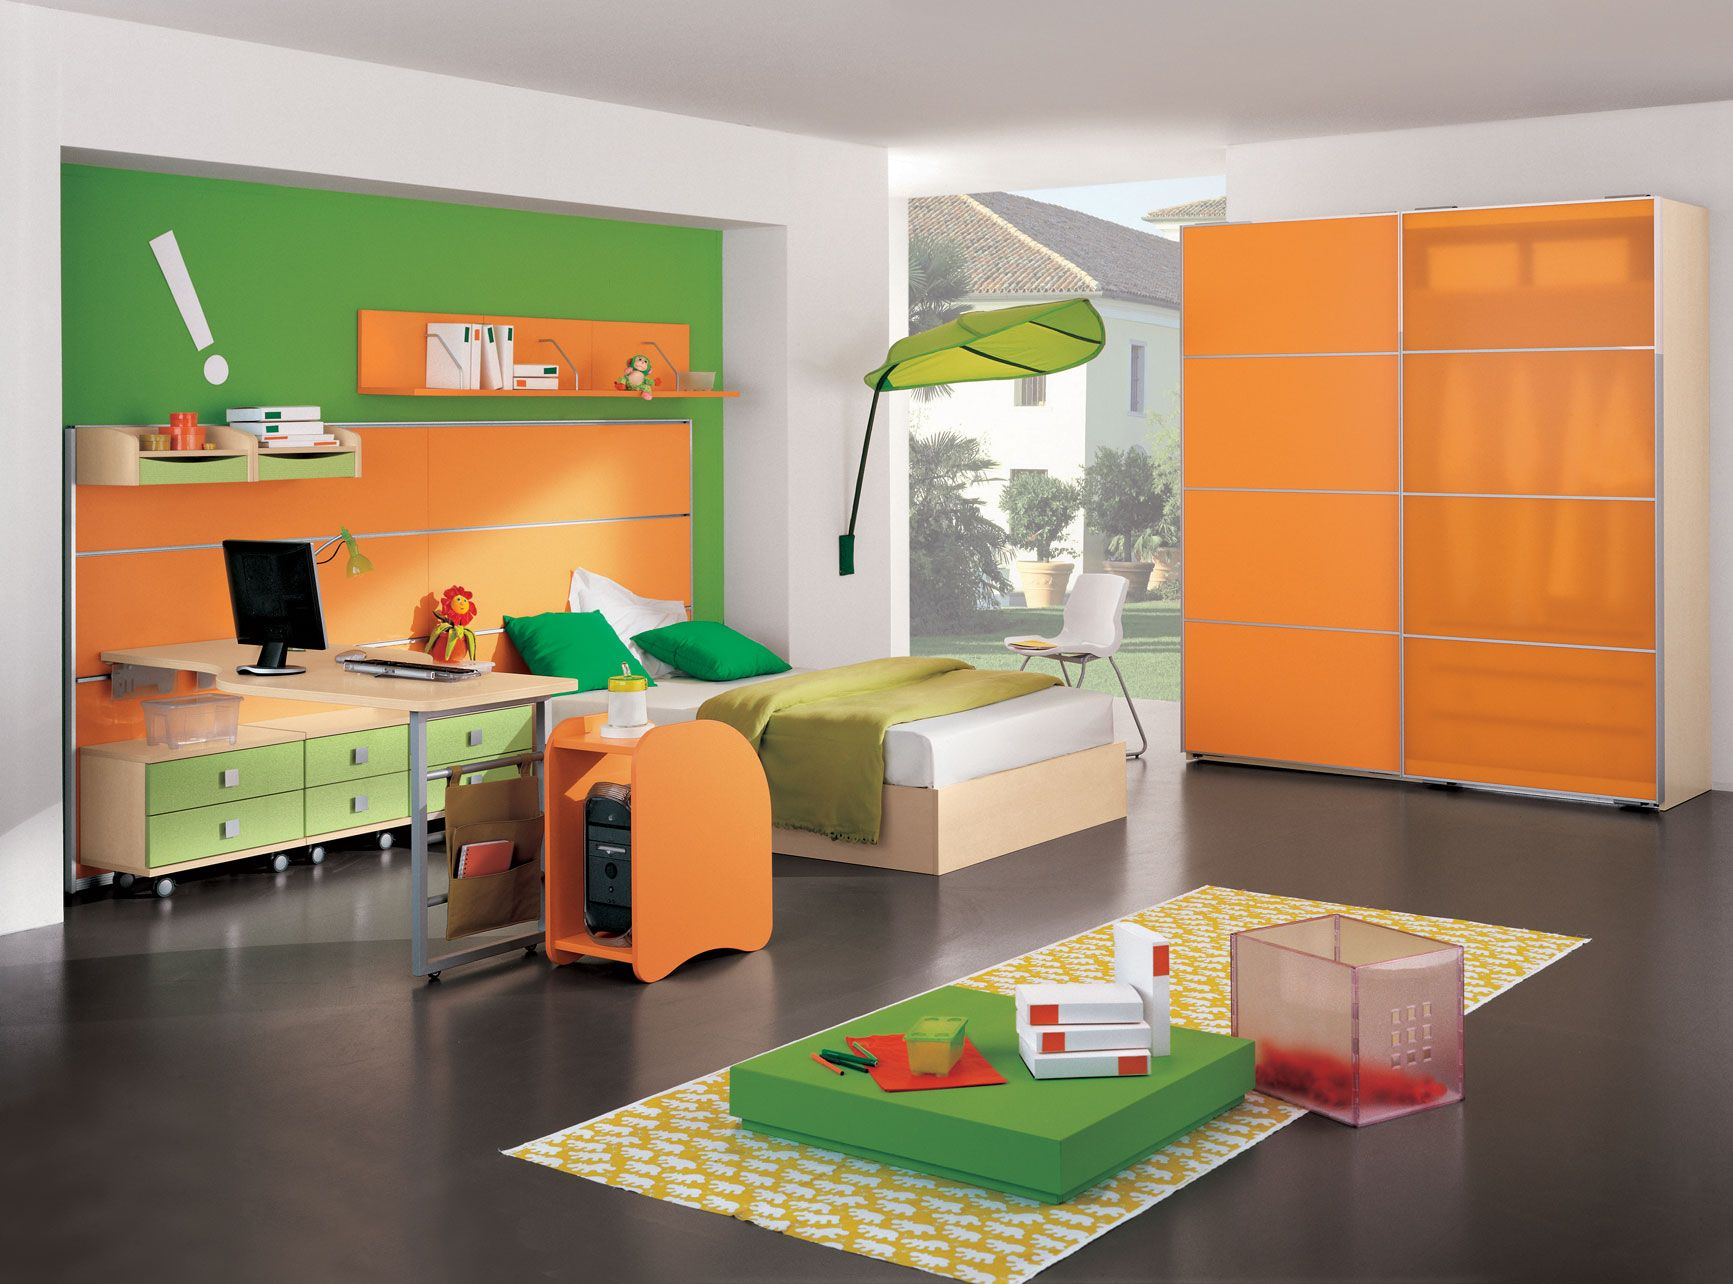 i-comfy-bedroom-decorating-ideas-and-pictures-for-married-couples-childrenu0027s-bedroom-decorating-ideas-pictures-childrens-bedroom-decorating-ideas-childrens-bedroom-decorating-ideas-picture.jpg 1,733×1,284 pixels